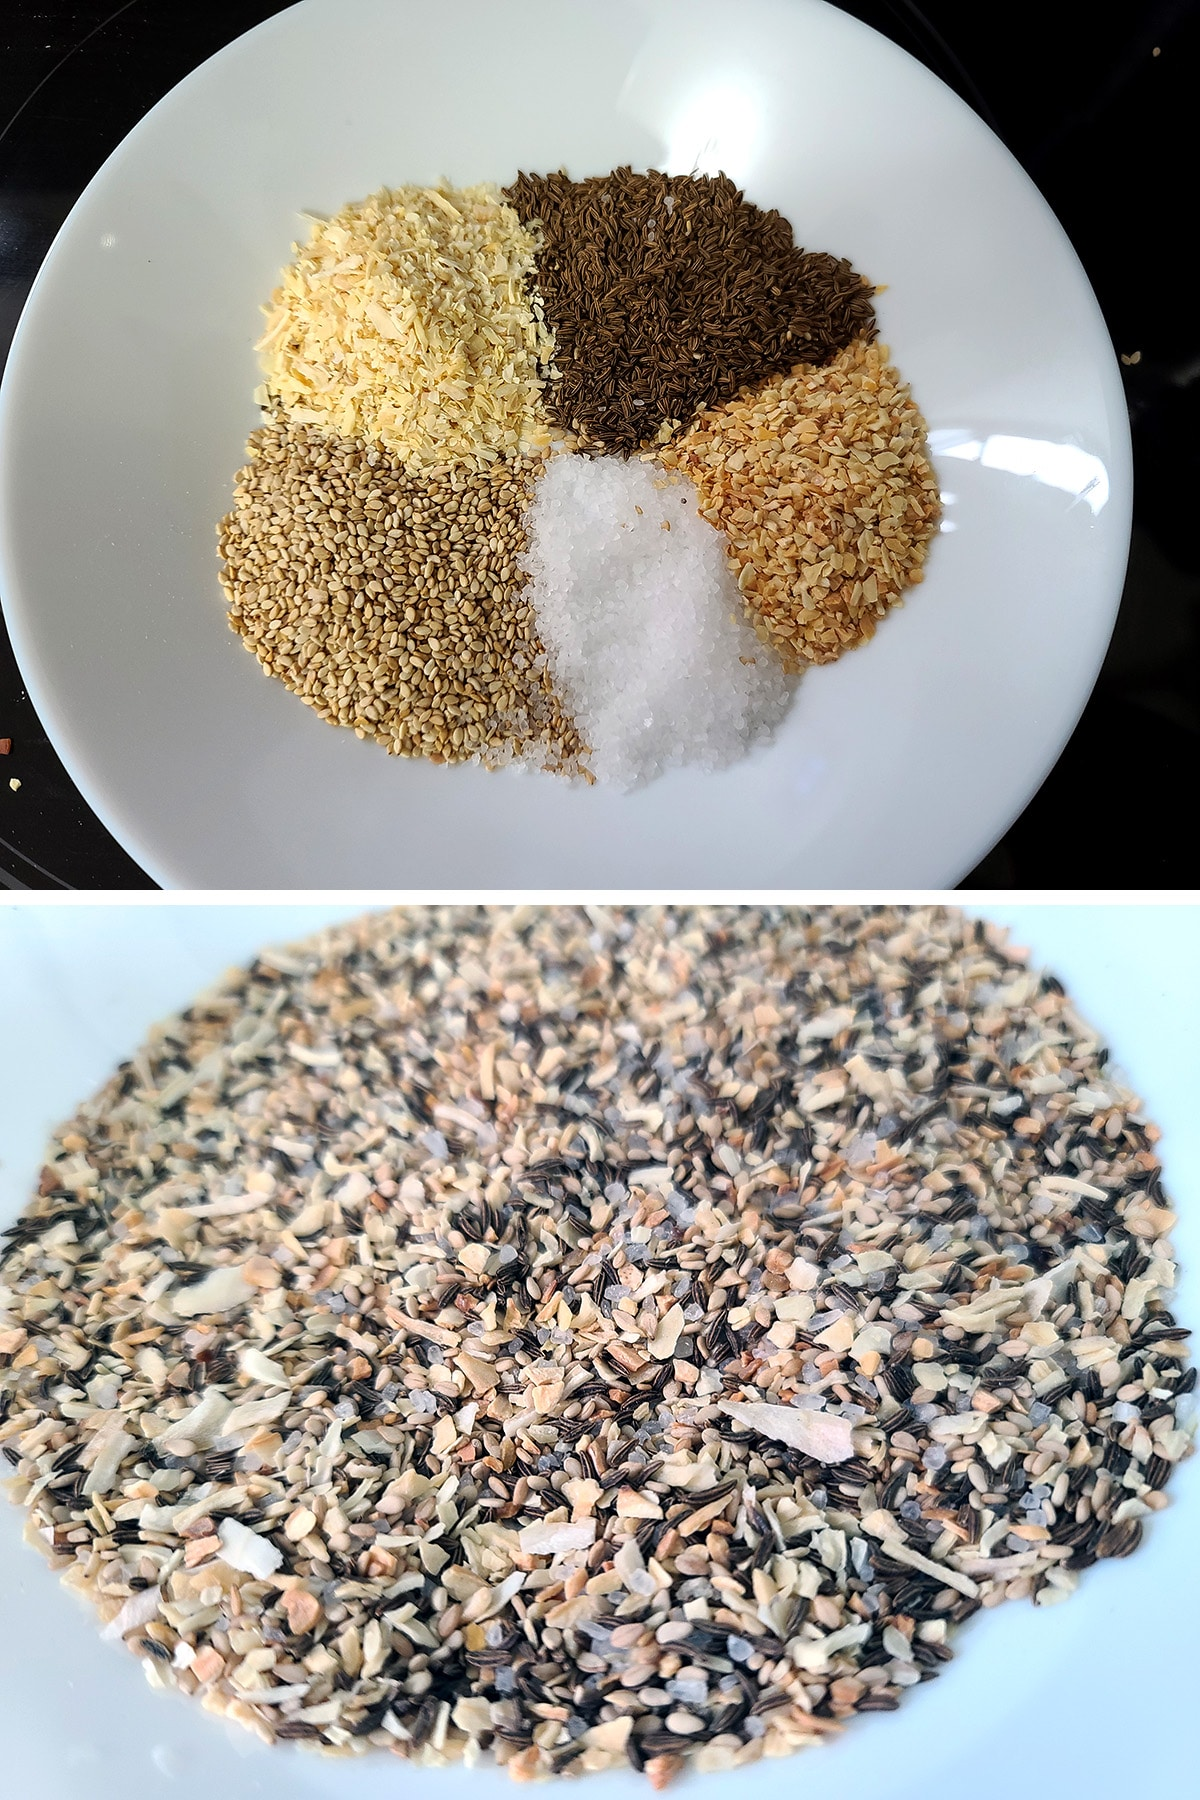 A two part image showing the ingredients for the topping measured out into a bowl, then after they've been mixed together.